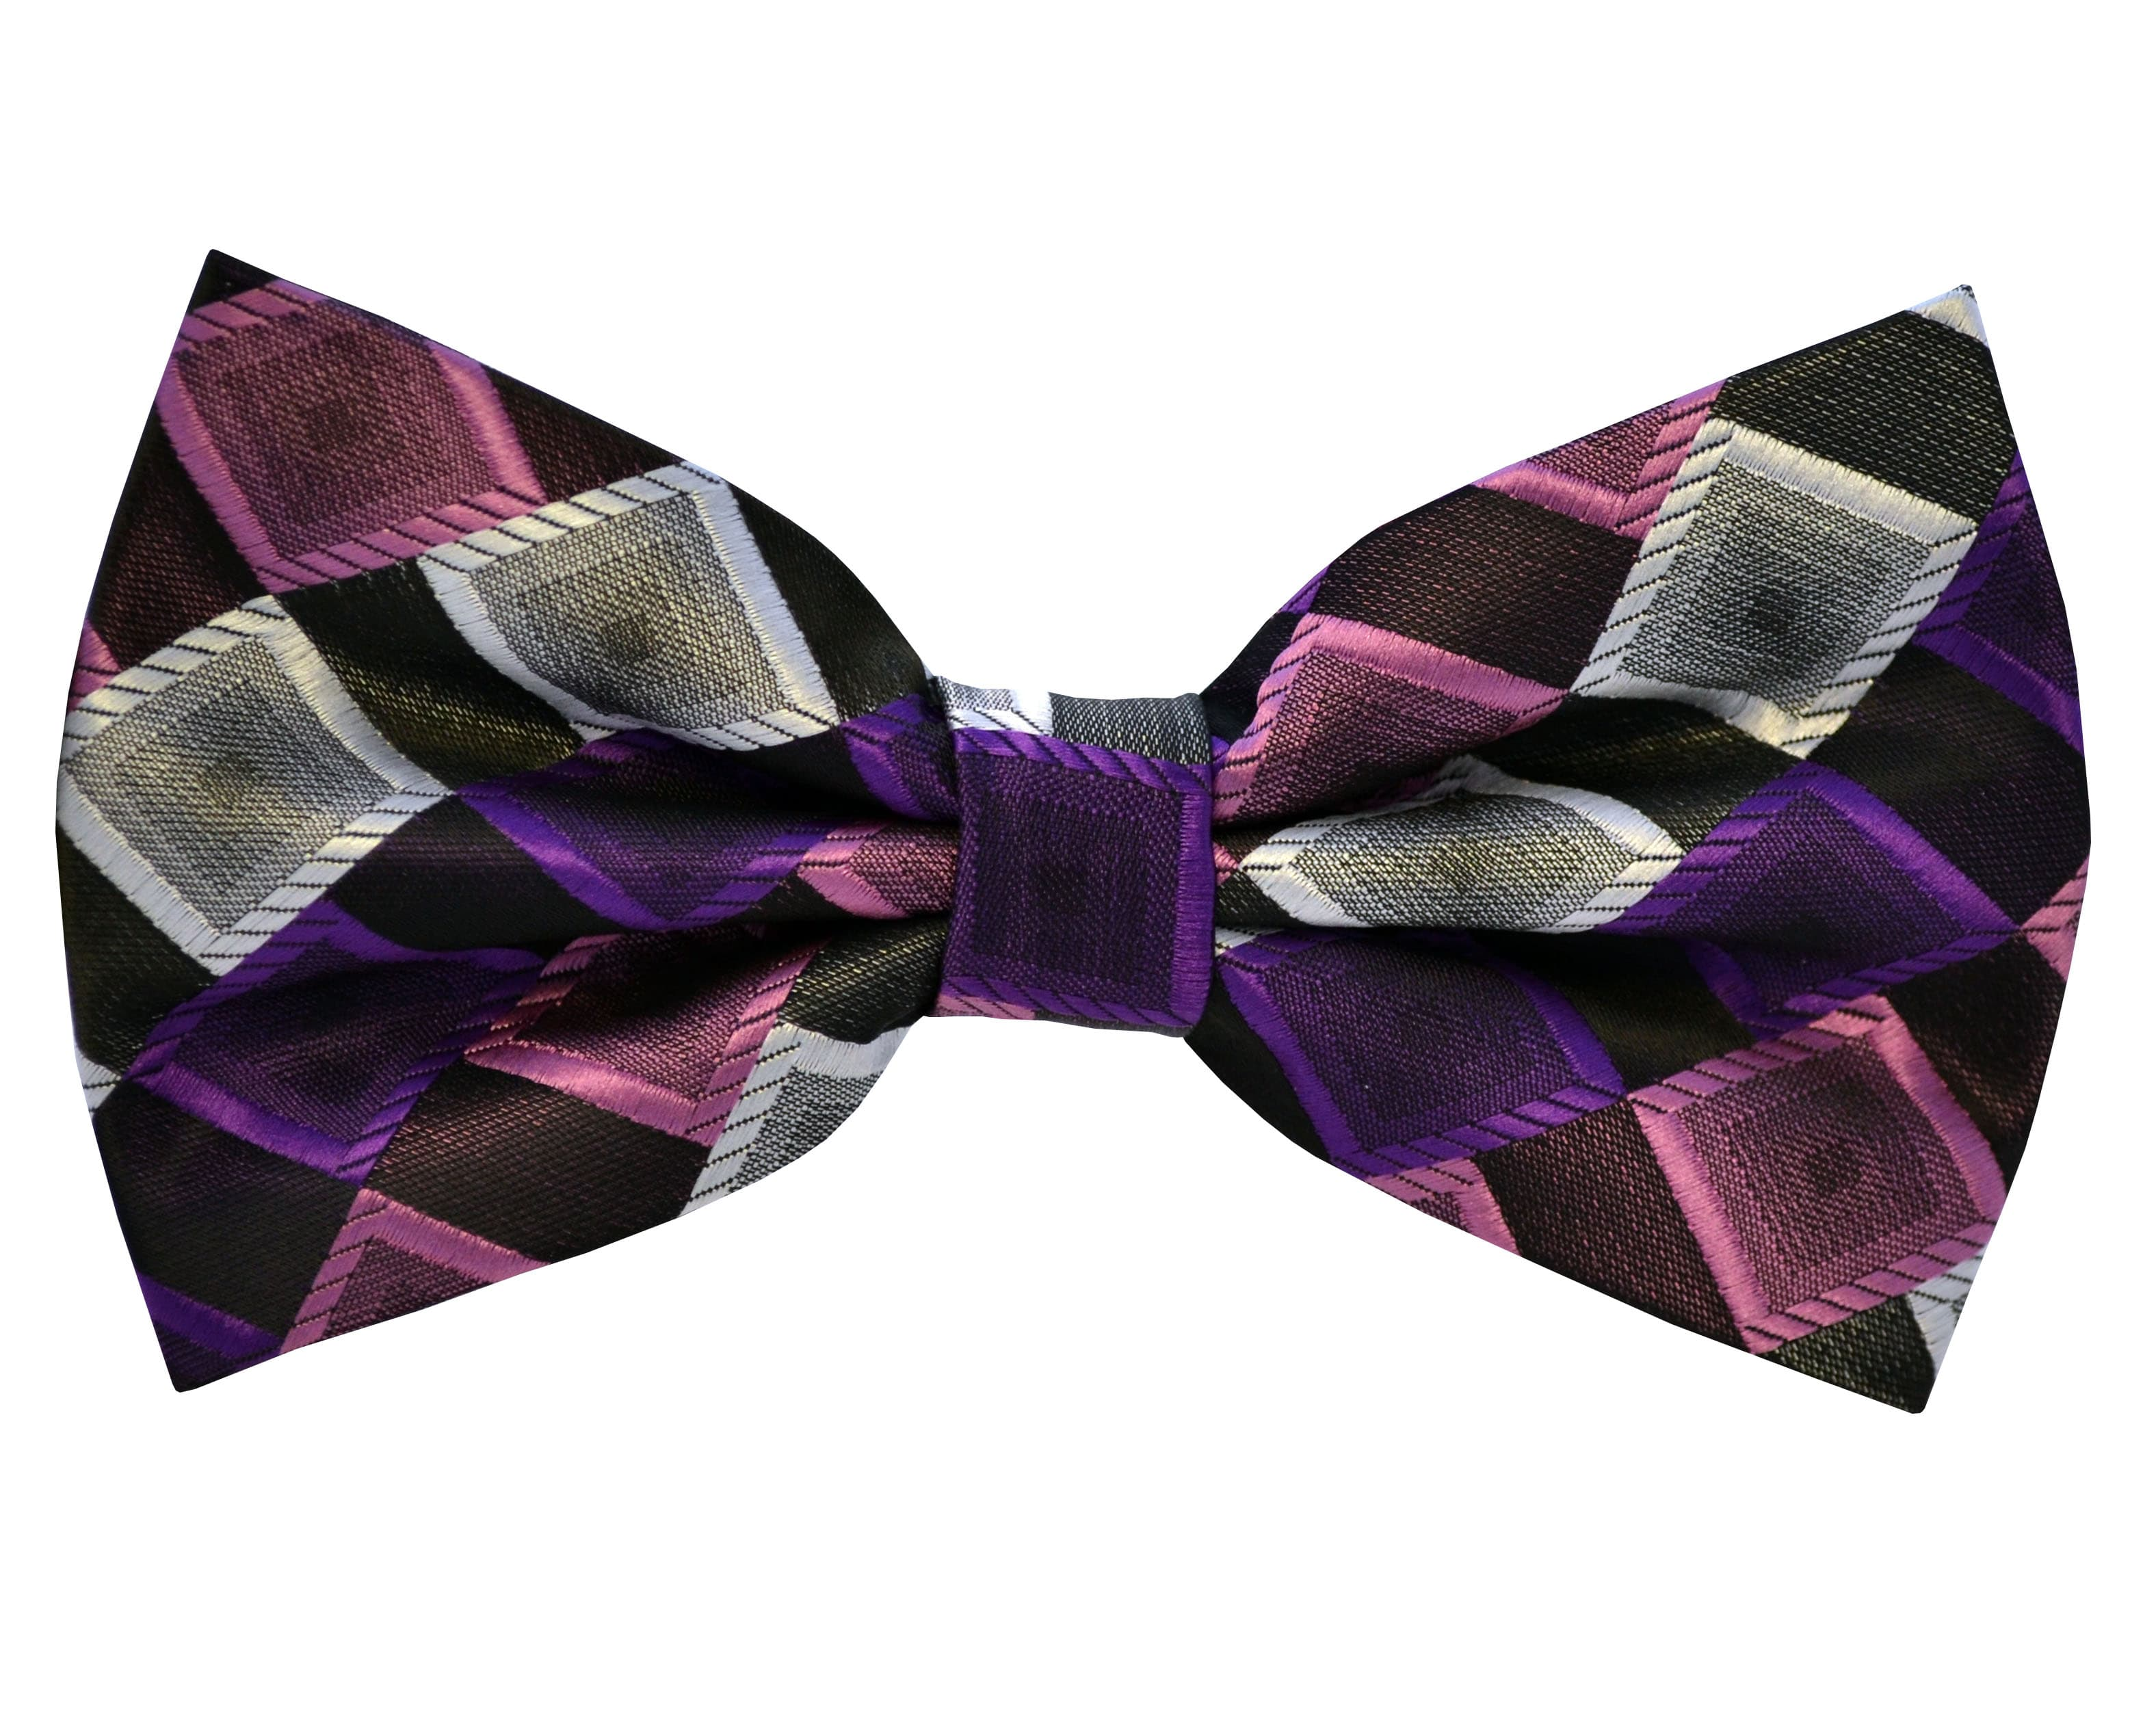 Shop Double TWO Pink and Purple Patterned Bow Tie